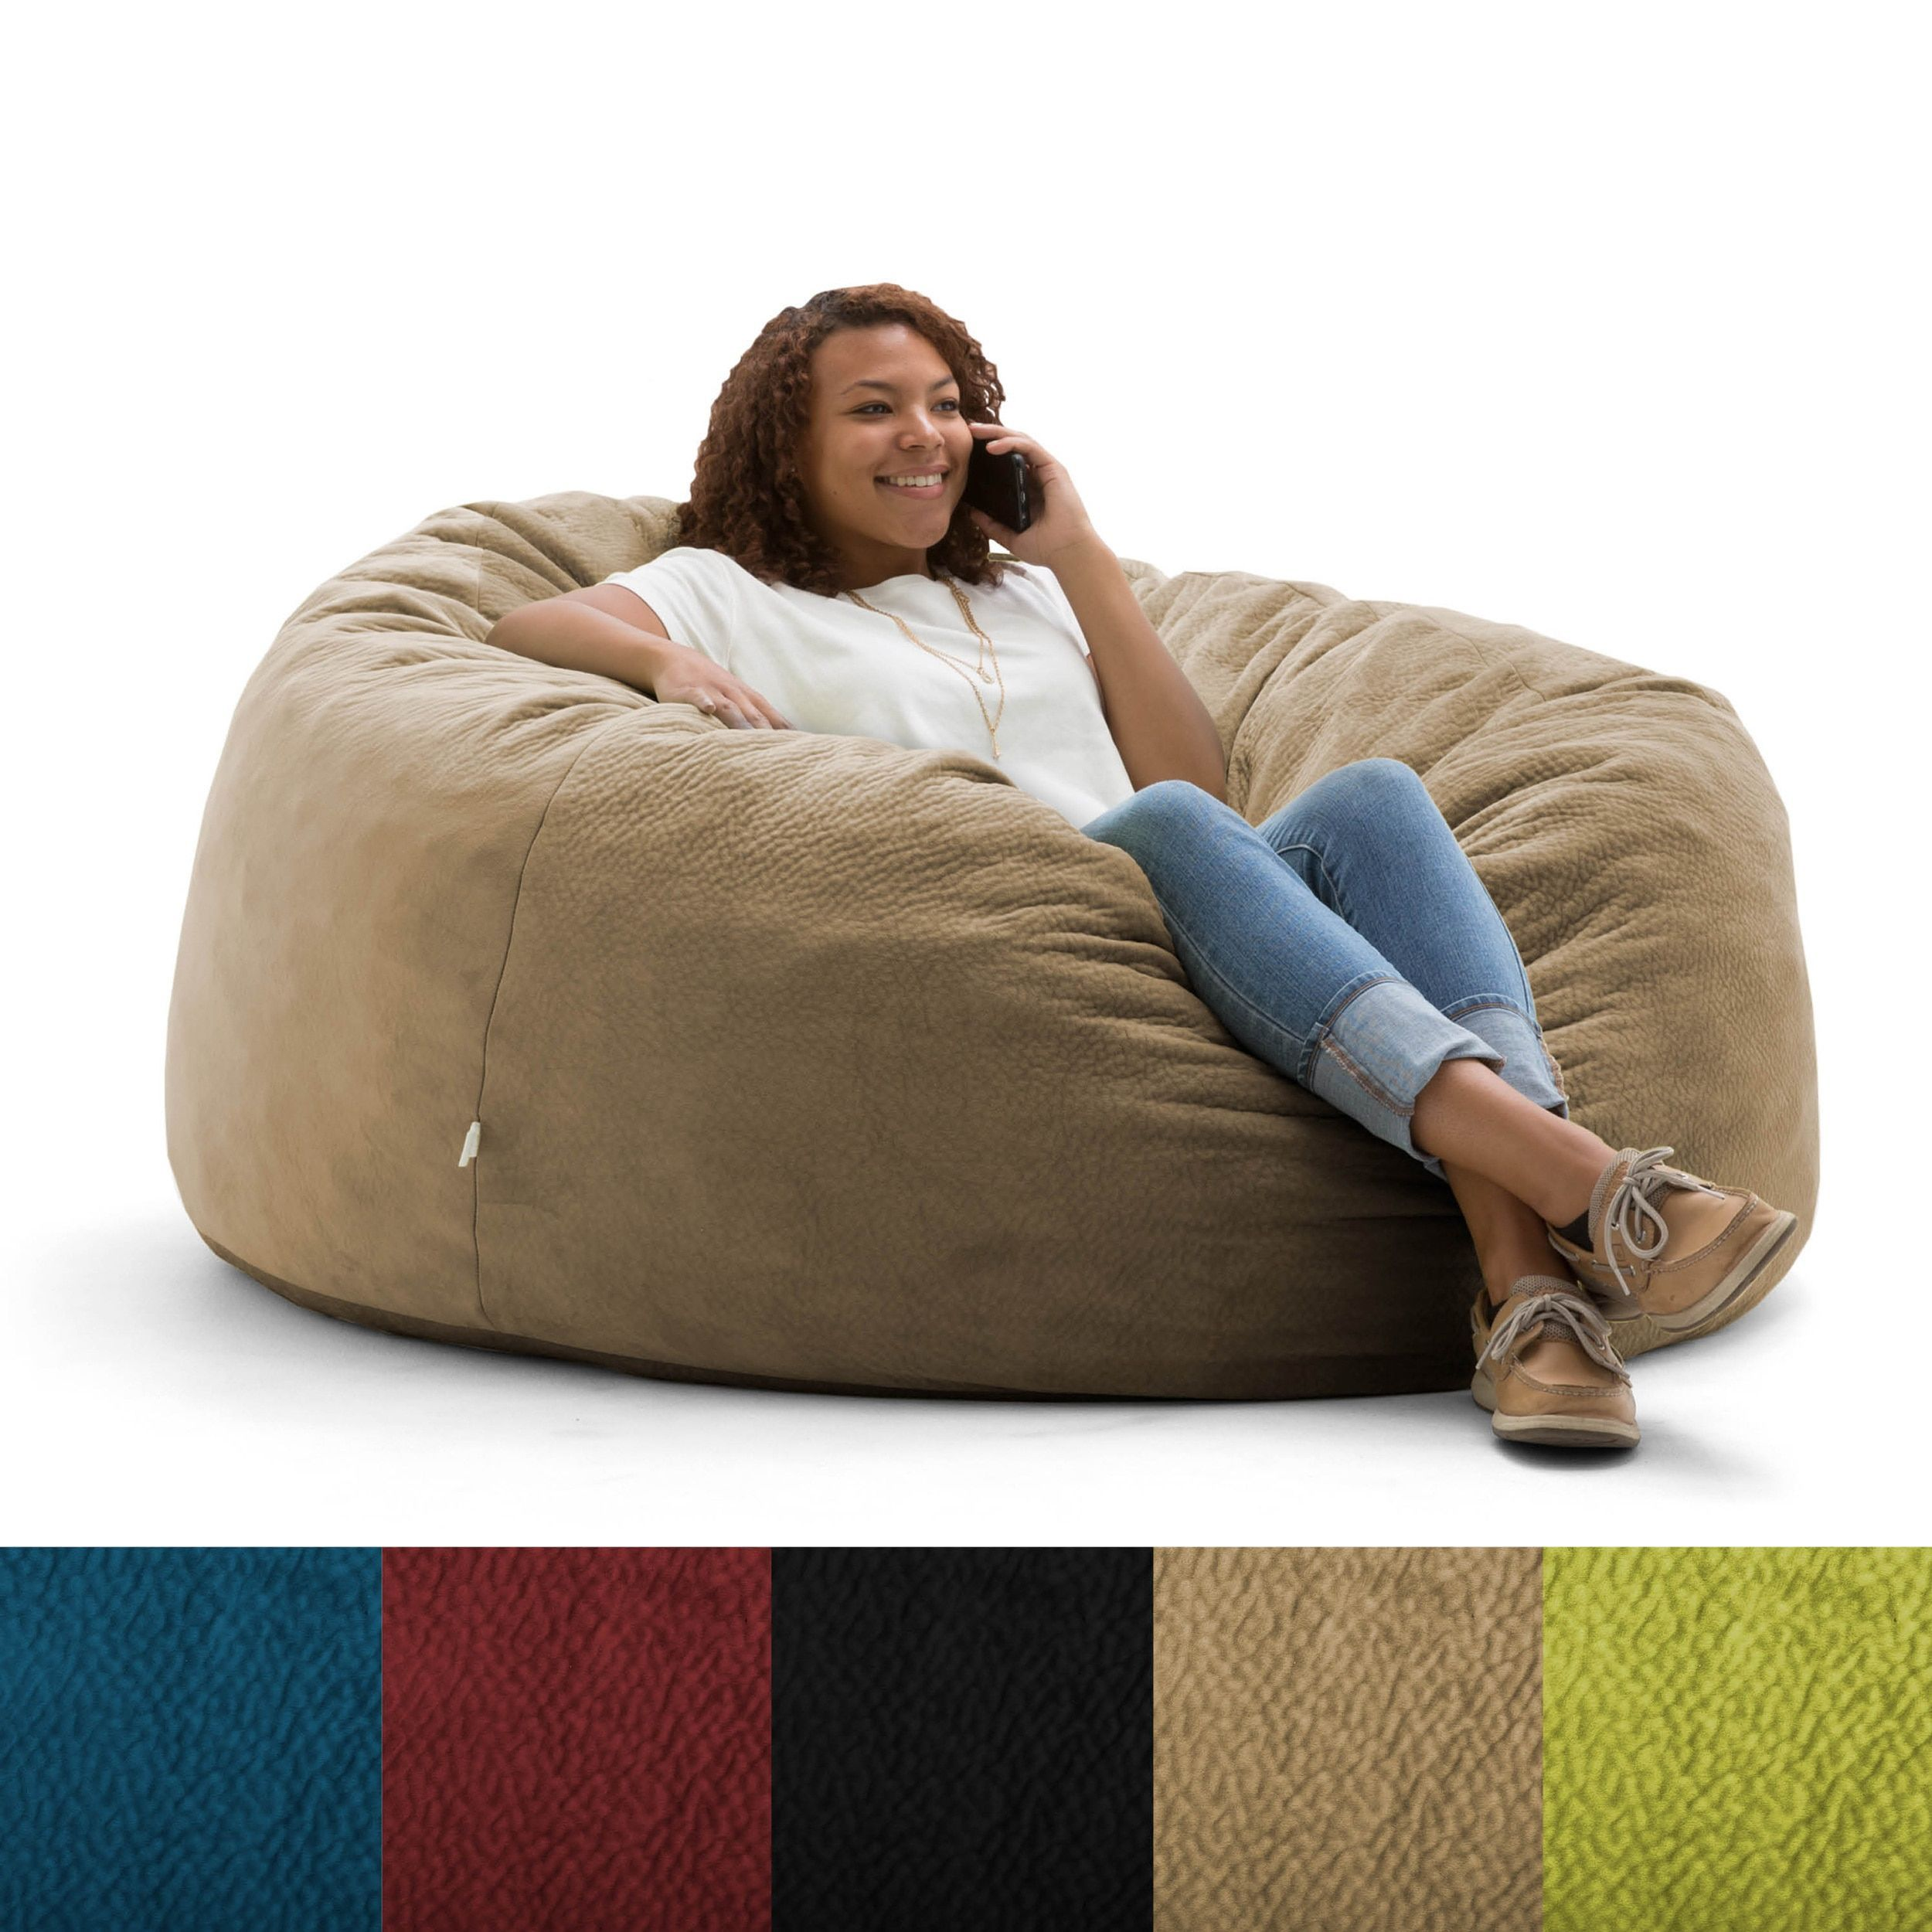 Peachy Fufsack Big Joe Lux Textured Memory Foam Bean Bag Chair Ibusinesslaw Wood Chair Design Ideas Ibusinesslaworg